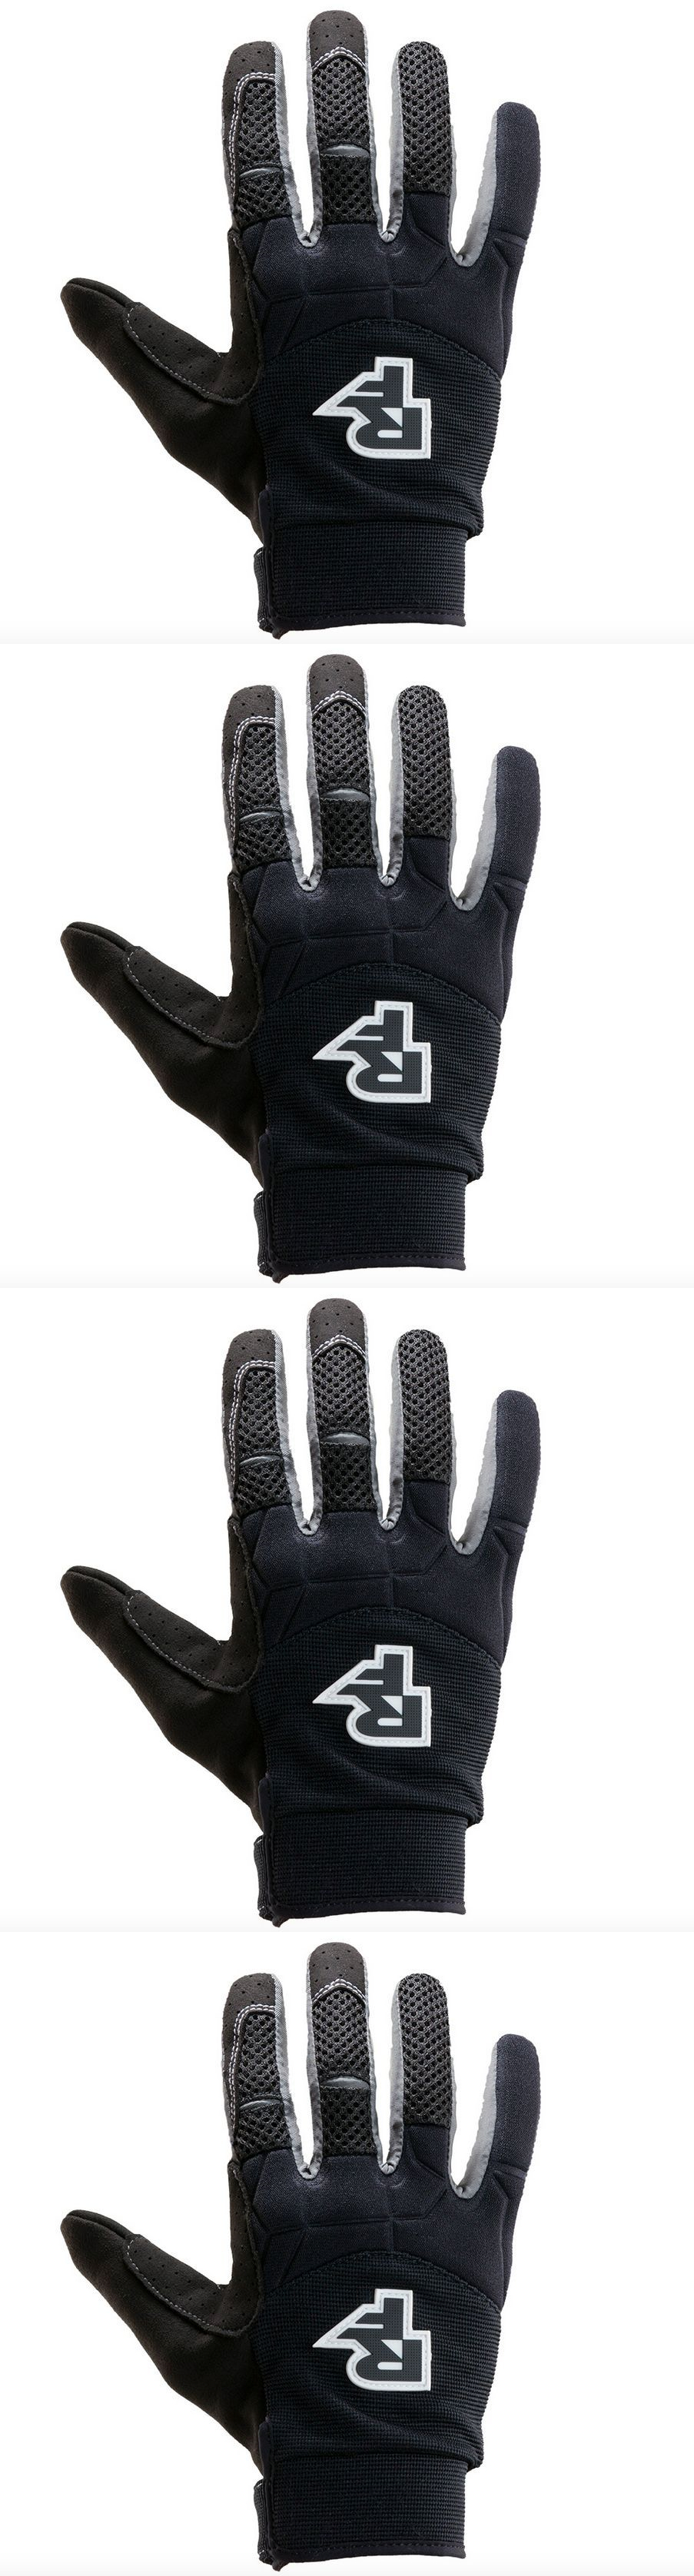 Gloves raceface indy glove xlarge blk ue buy it now only